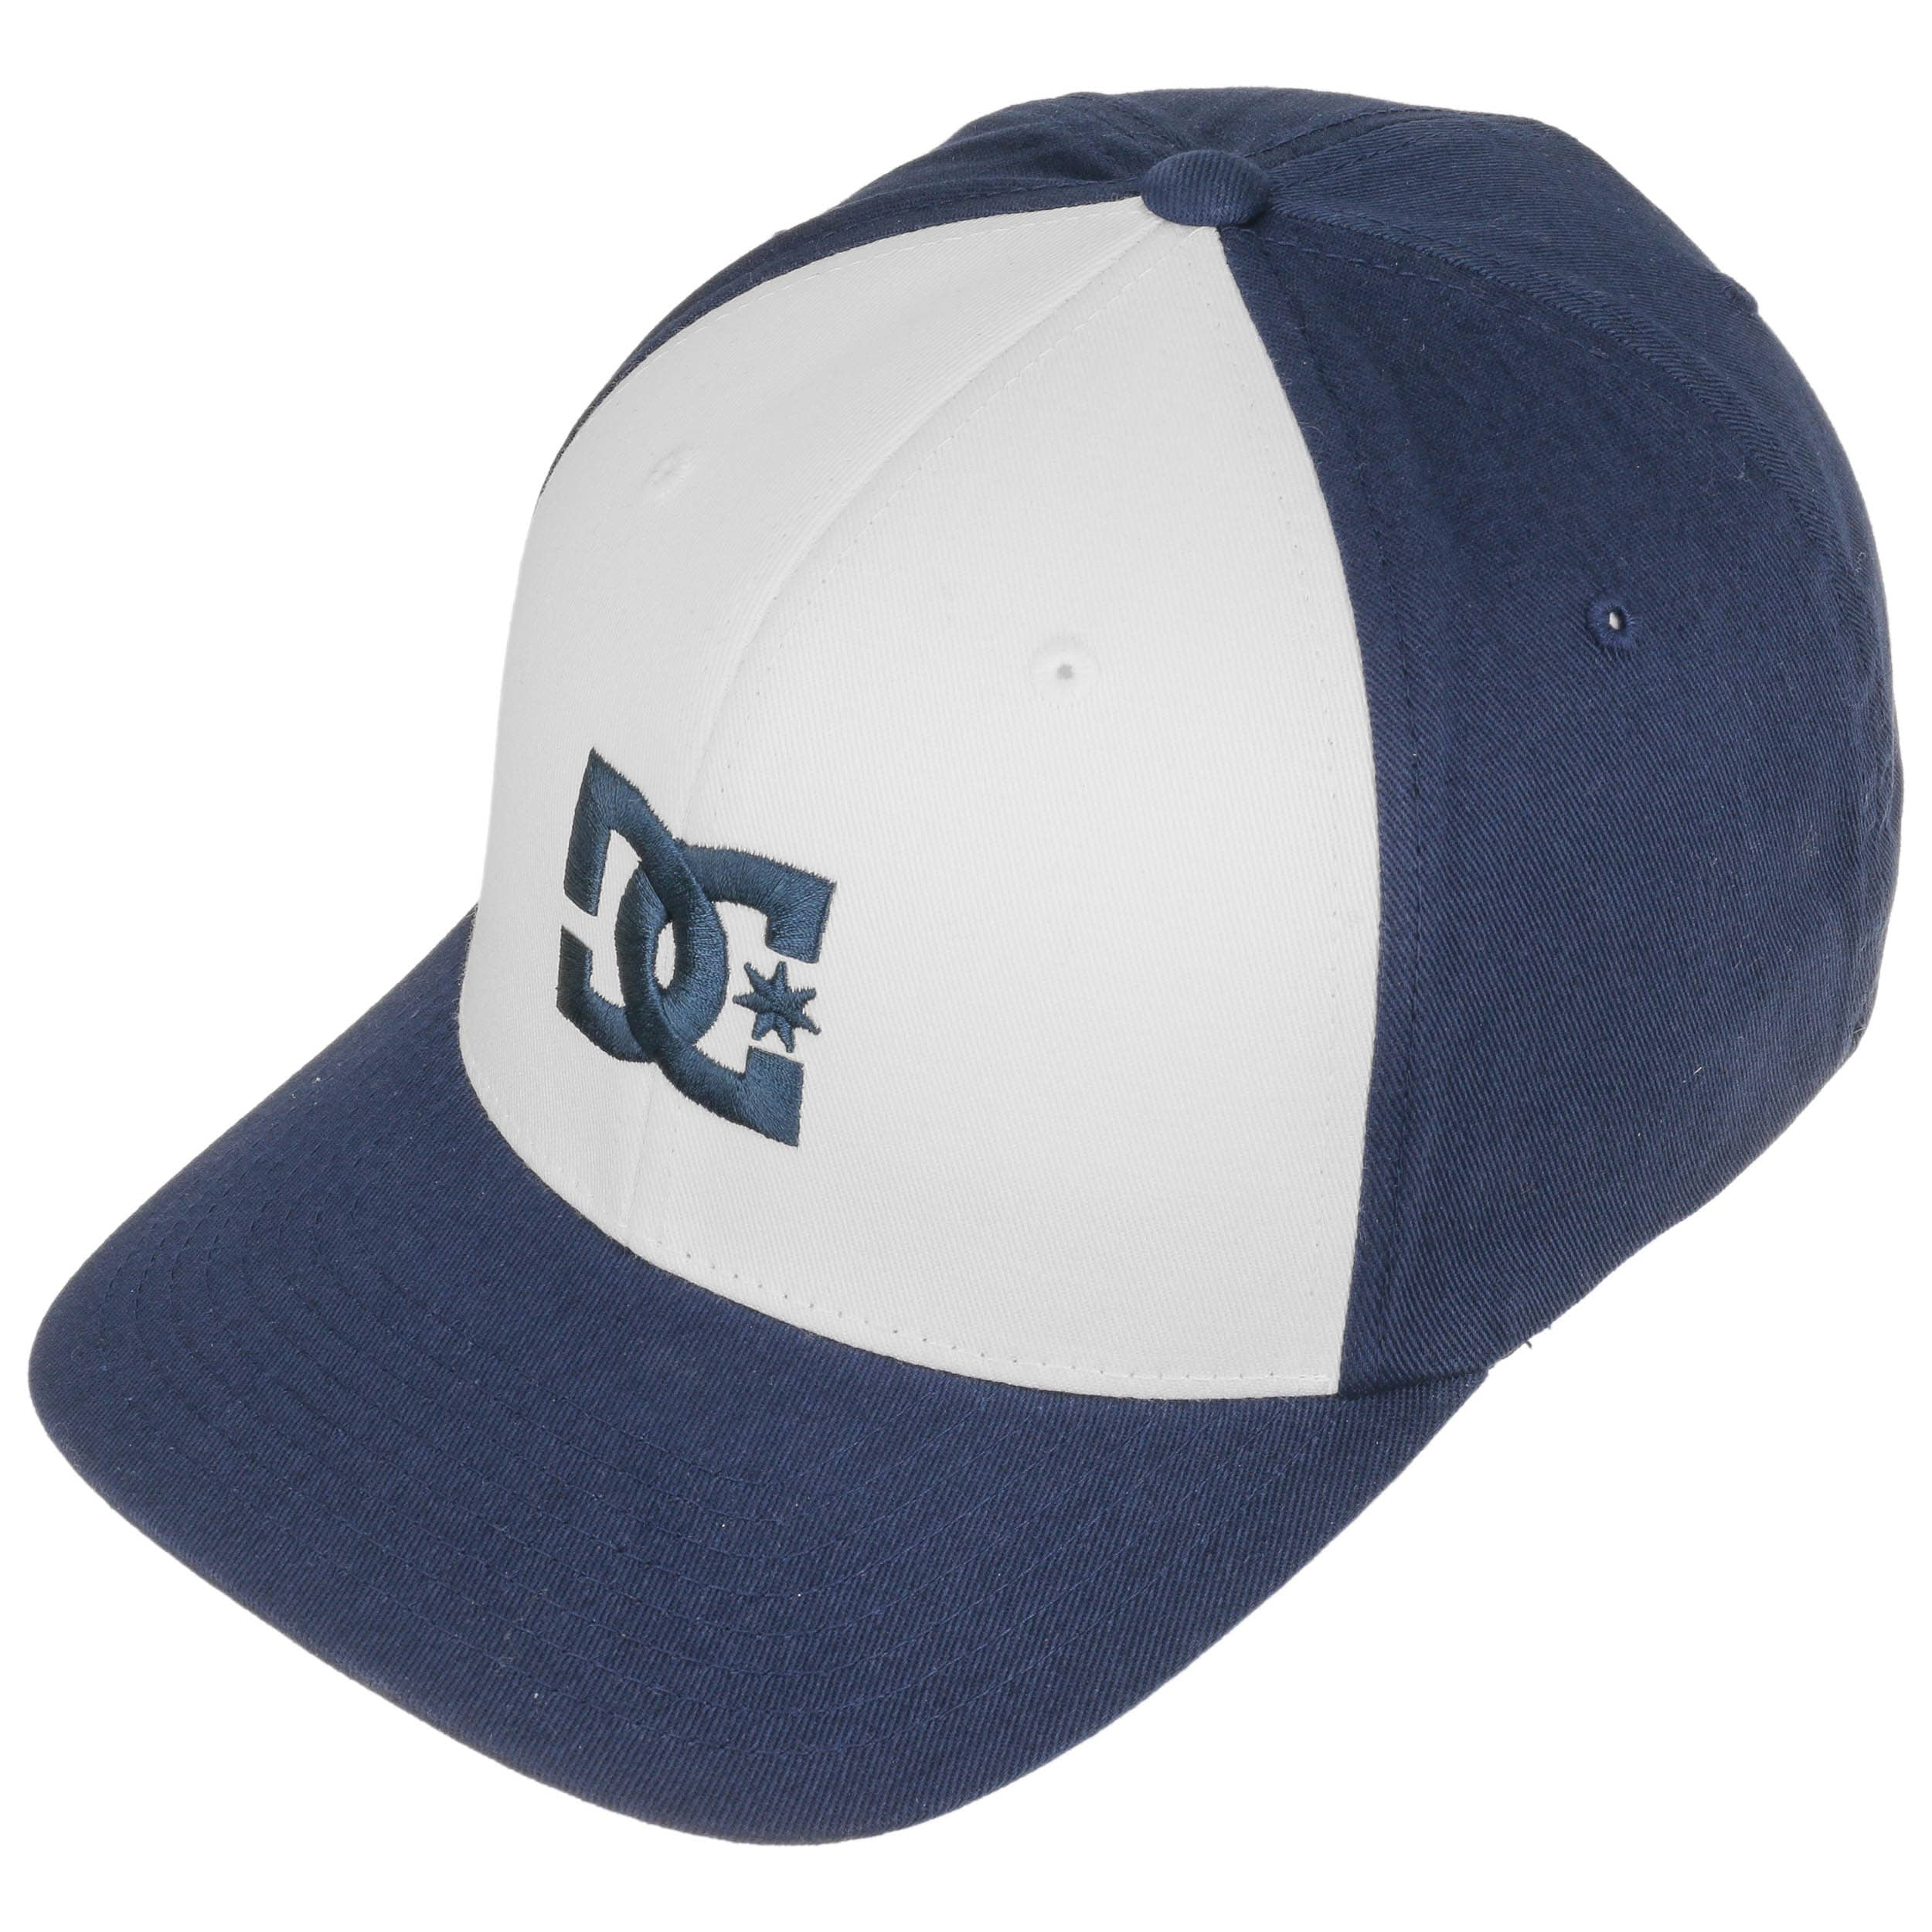 1783d99f790 Star 2 Flexfit Cap By Dc Shoes Co Eur 37 95 Hats Caps